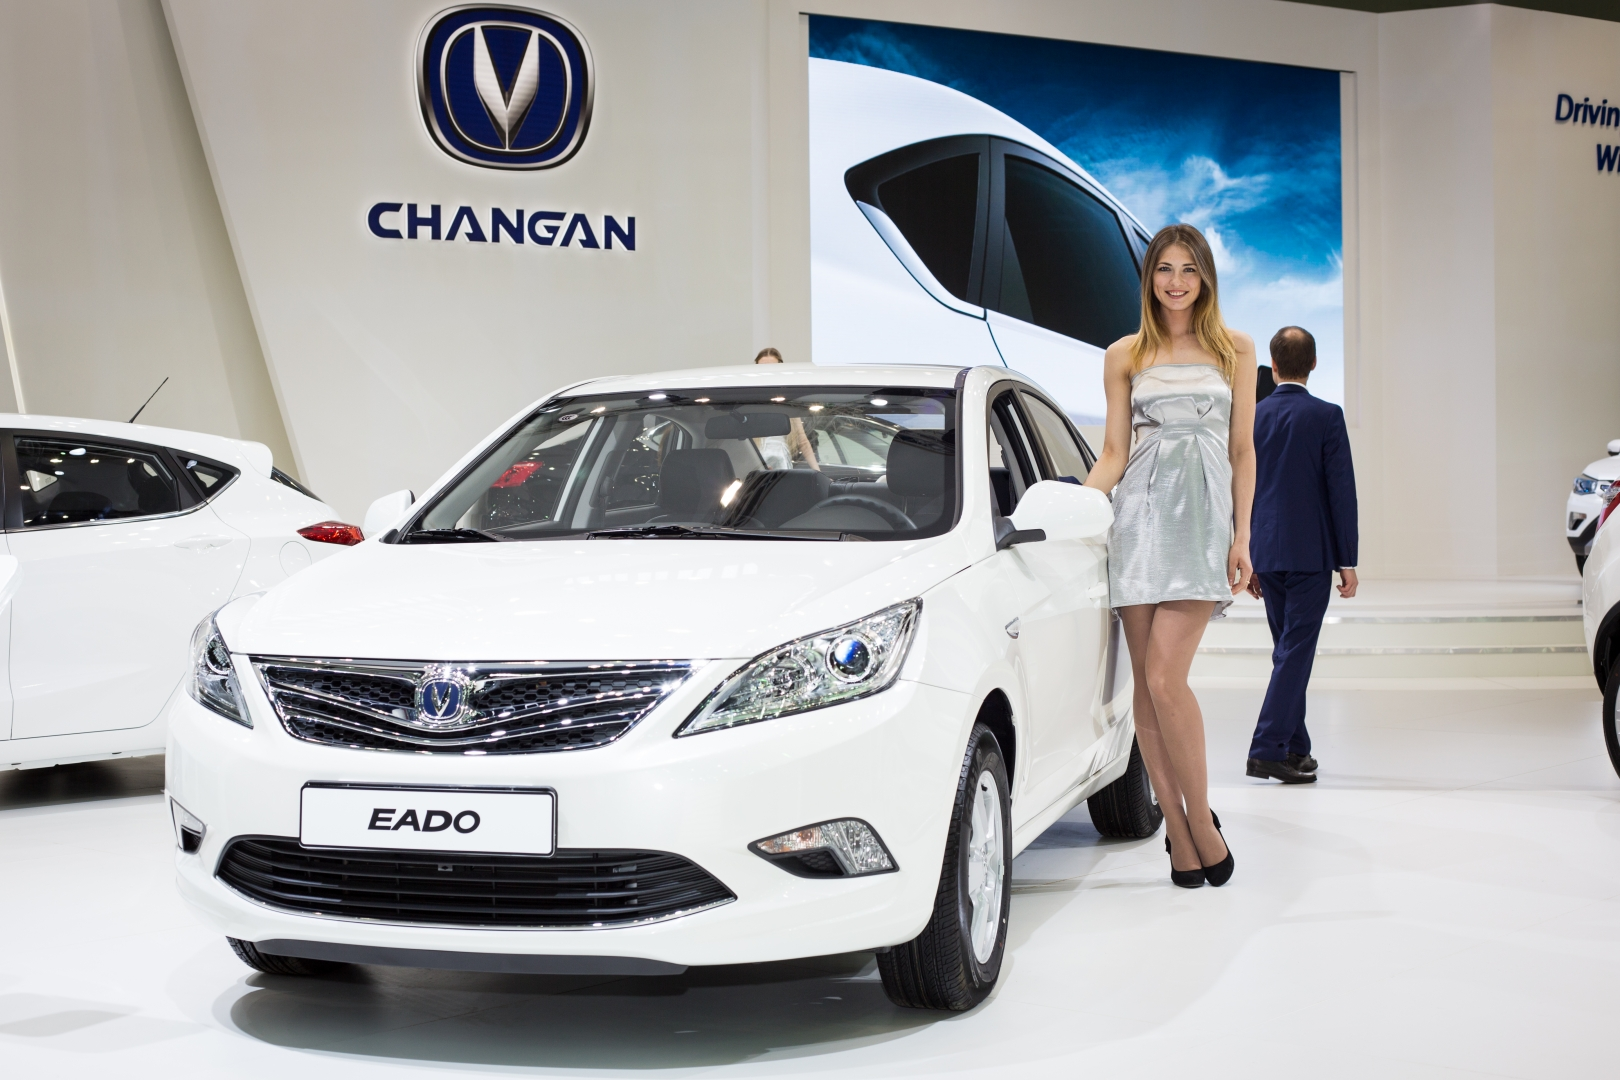 Changan Sold 1 Million+ Units in China for 4th Year in a Row 3